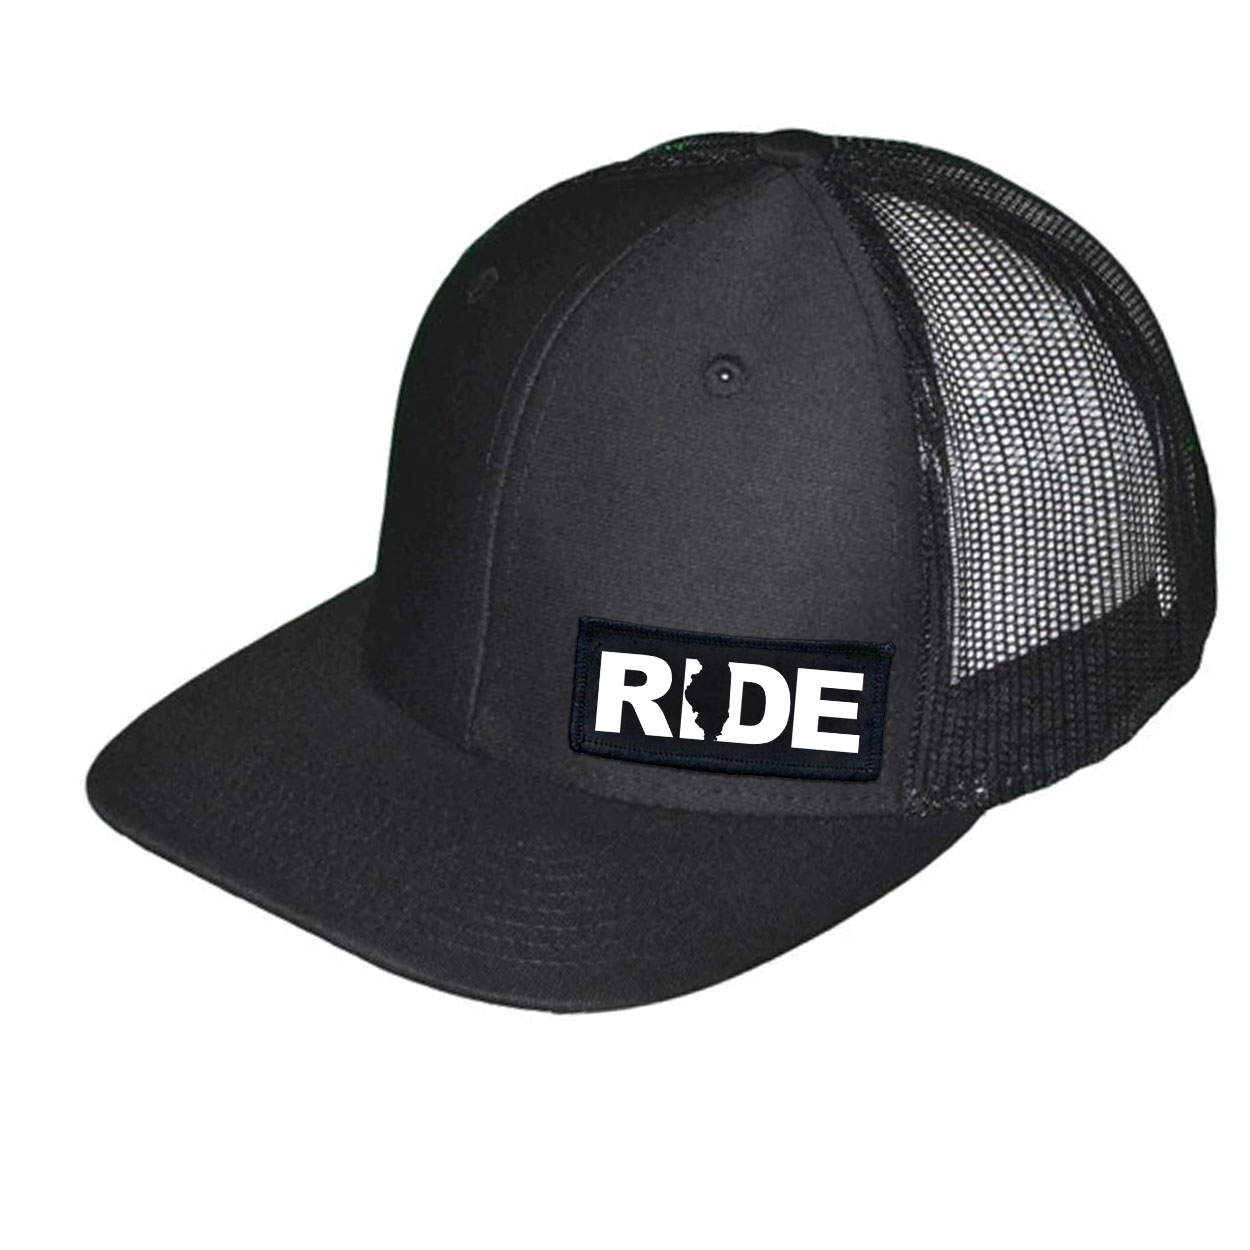 Ride Illinois Night Out Woven Patch Snapback Trucker Hat Black (White Logo)